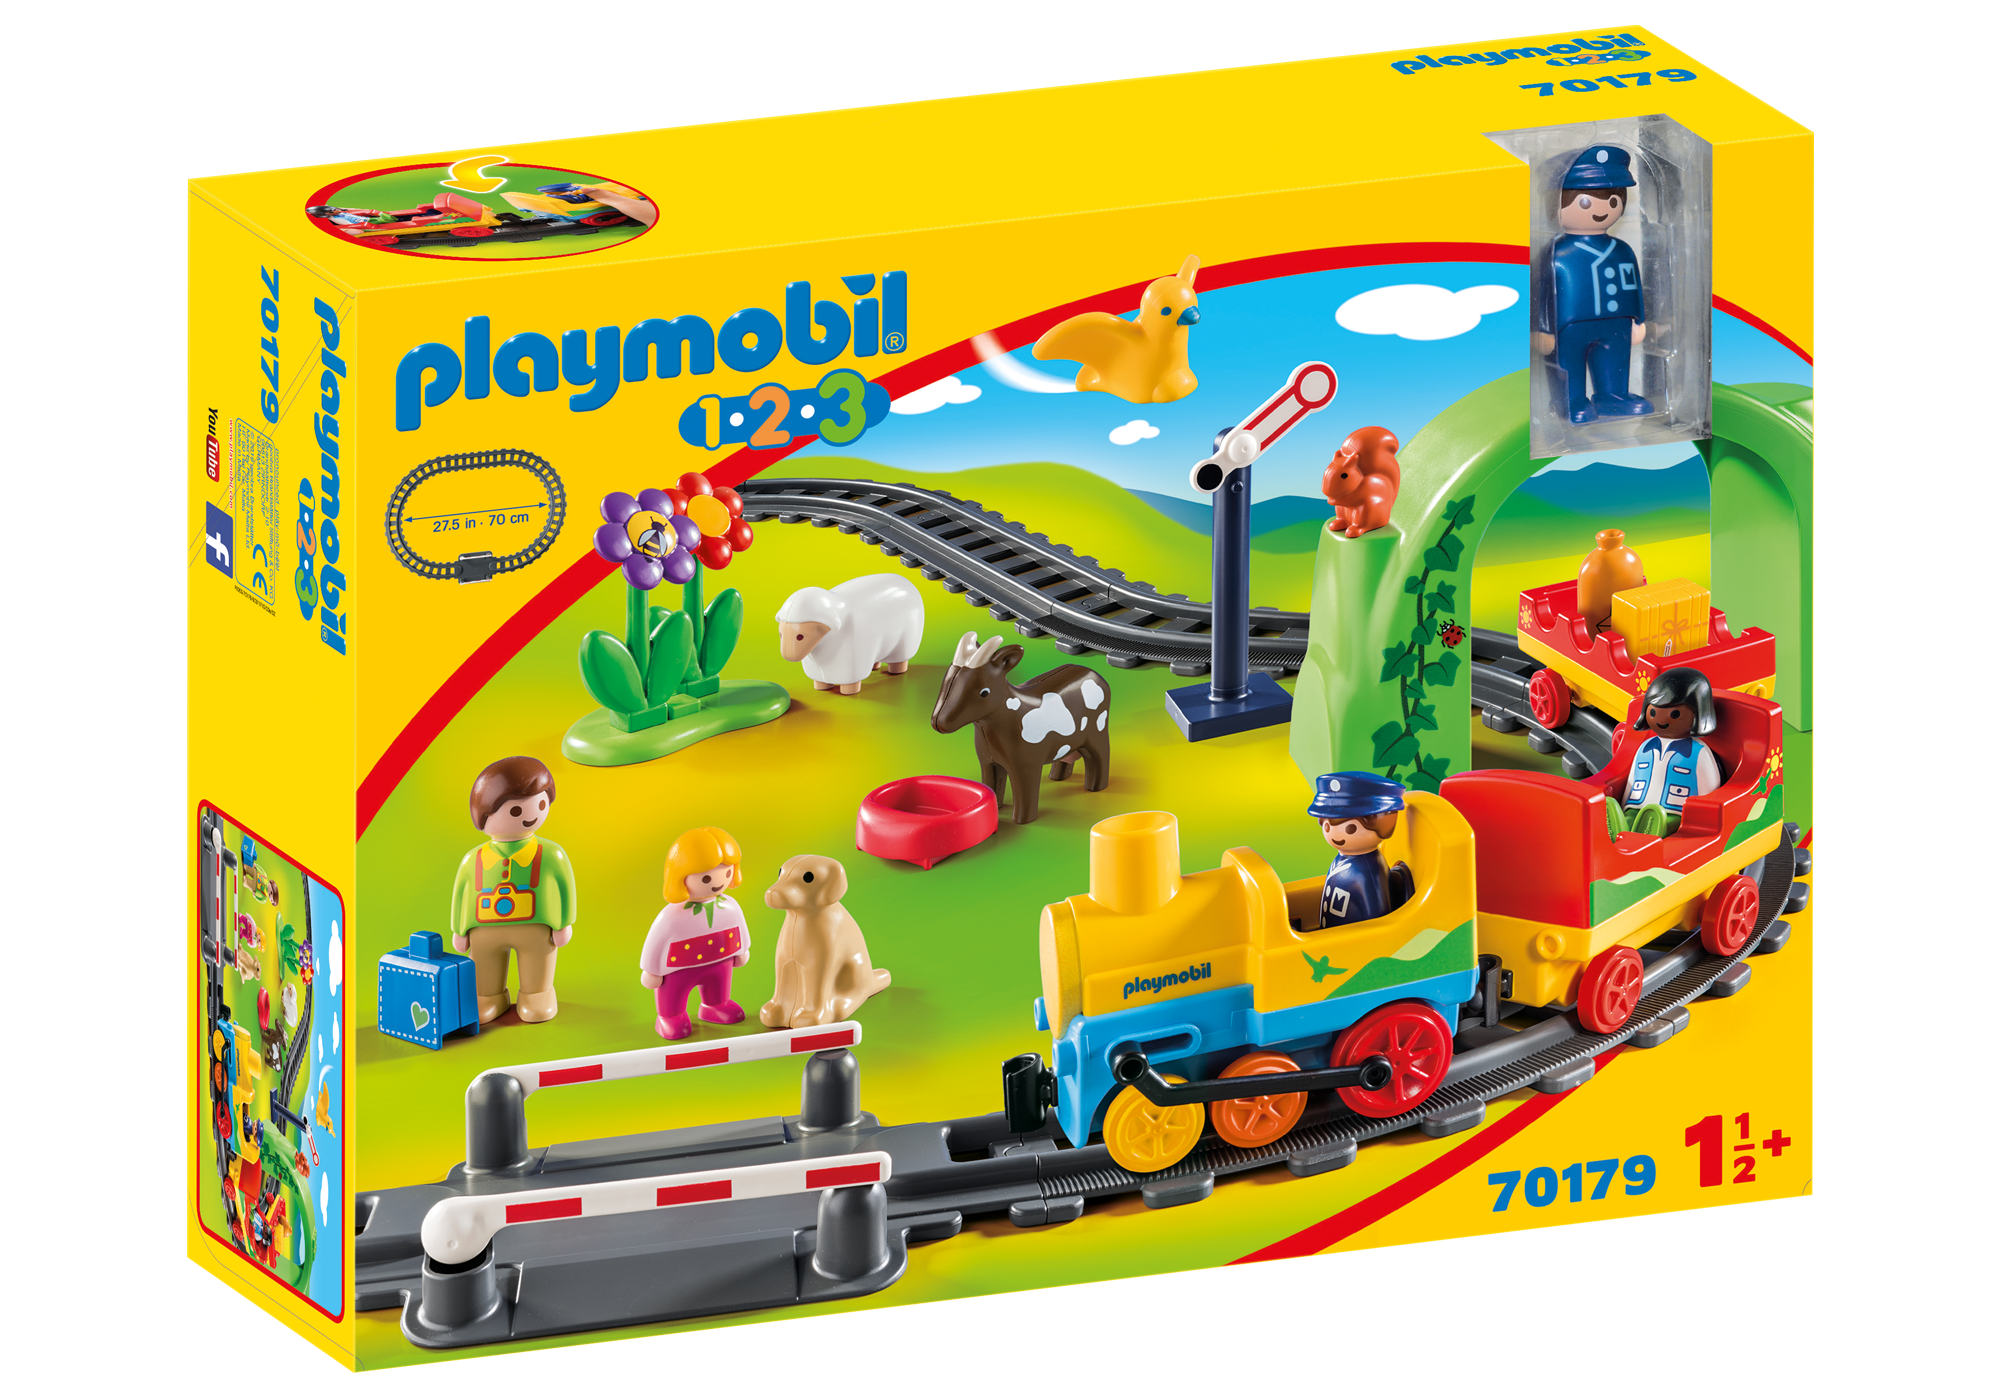 http://media.playmobil.com/i/playmobil/70179_product_box_front/My first train set